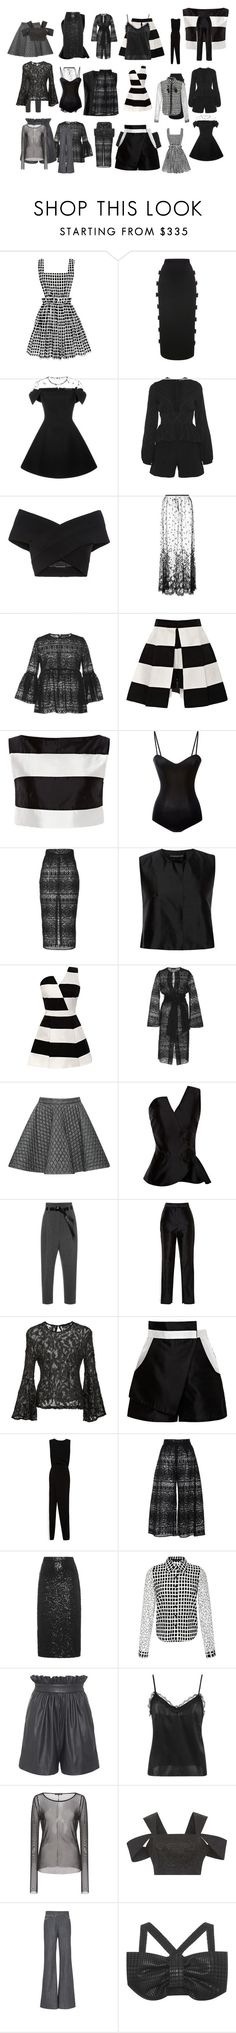 """Untitled #3123"" by luciana-boneca on Polyvore featuring Kalmanovich"